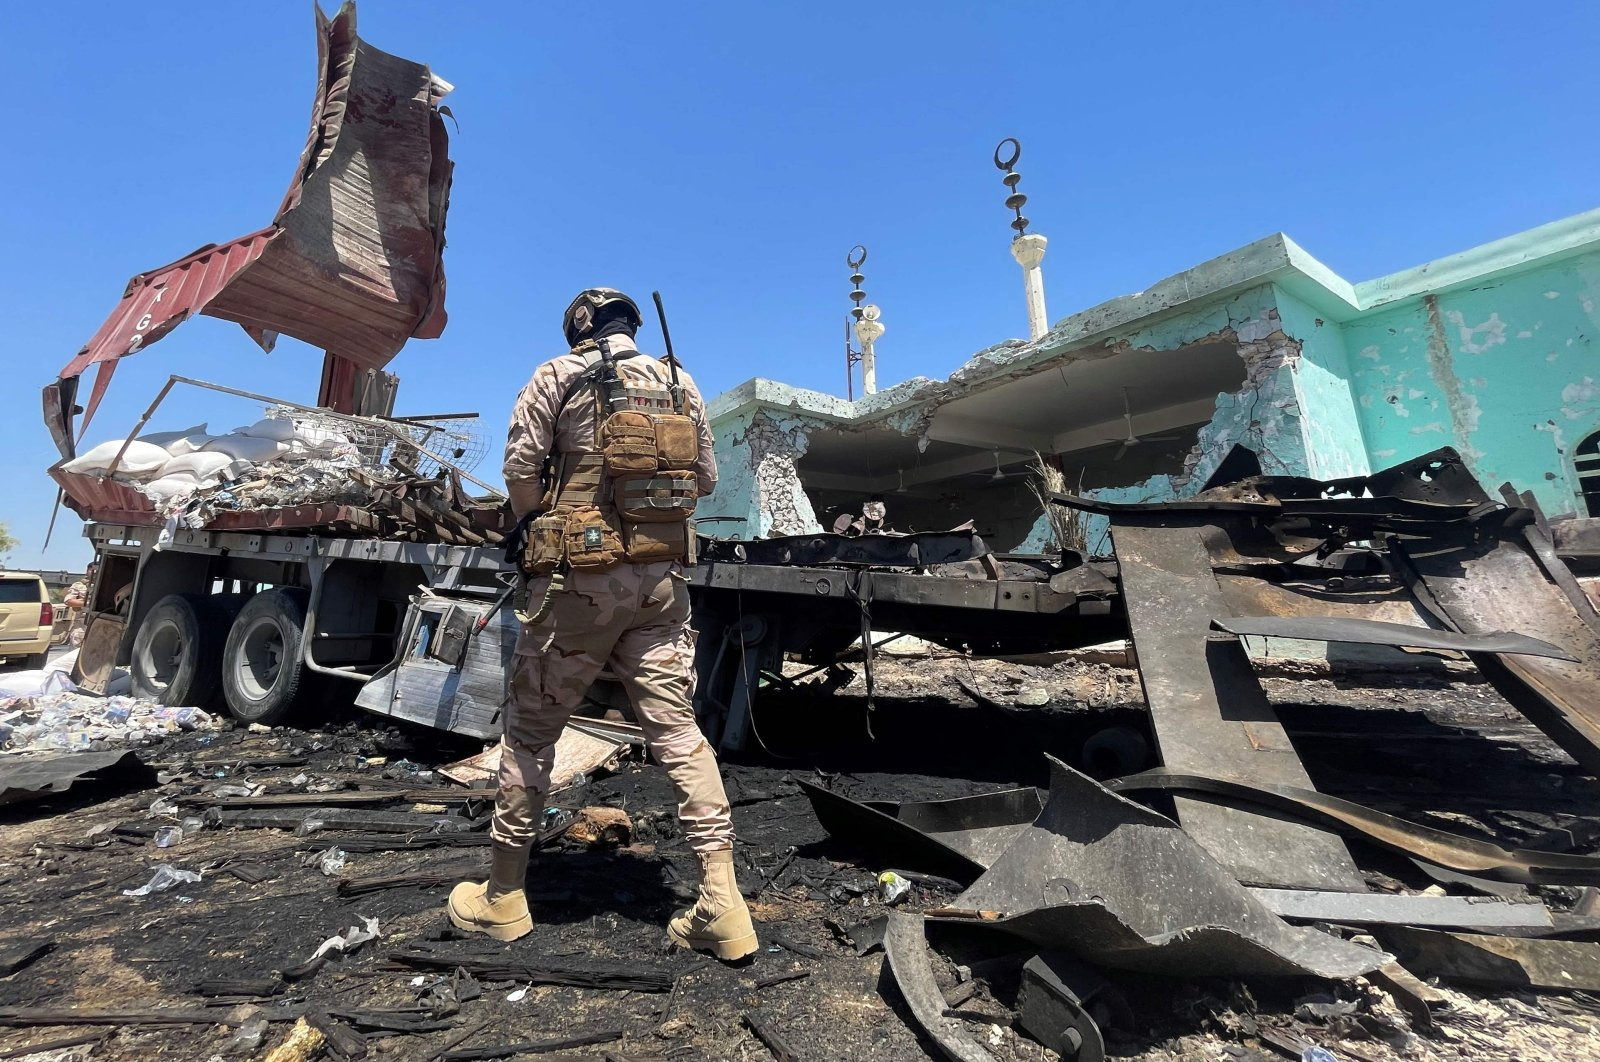 A member of the Iraqi security forces walks past a destroyed vehicle that was carrying rockets amdist sacks of flour, in the district of al-Baghdadi in al-Anbar province on July 8, 2021. (AFP Photo)